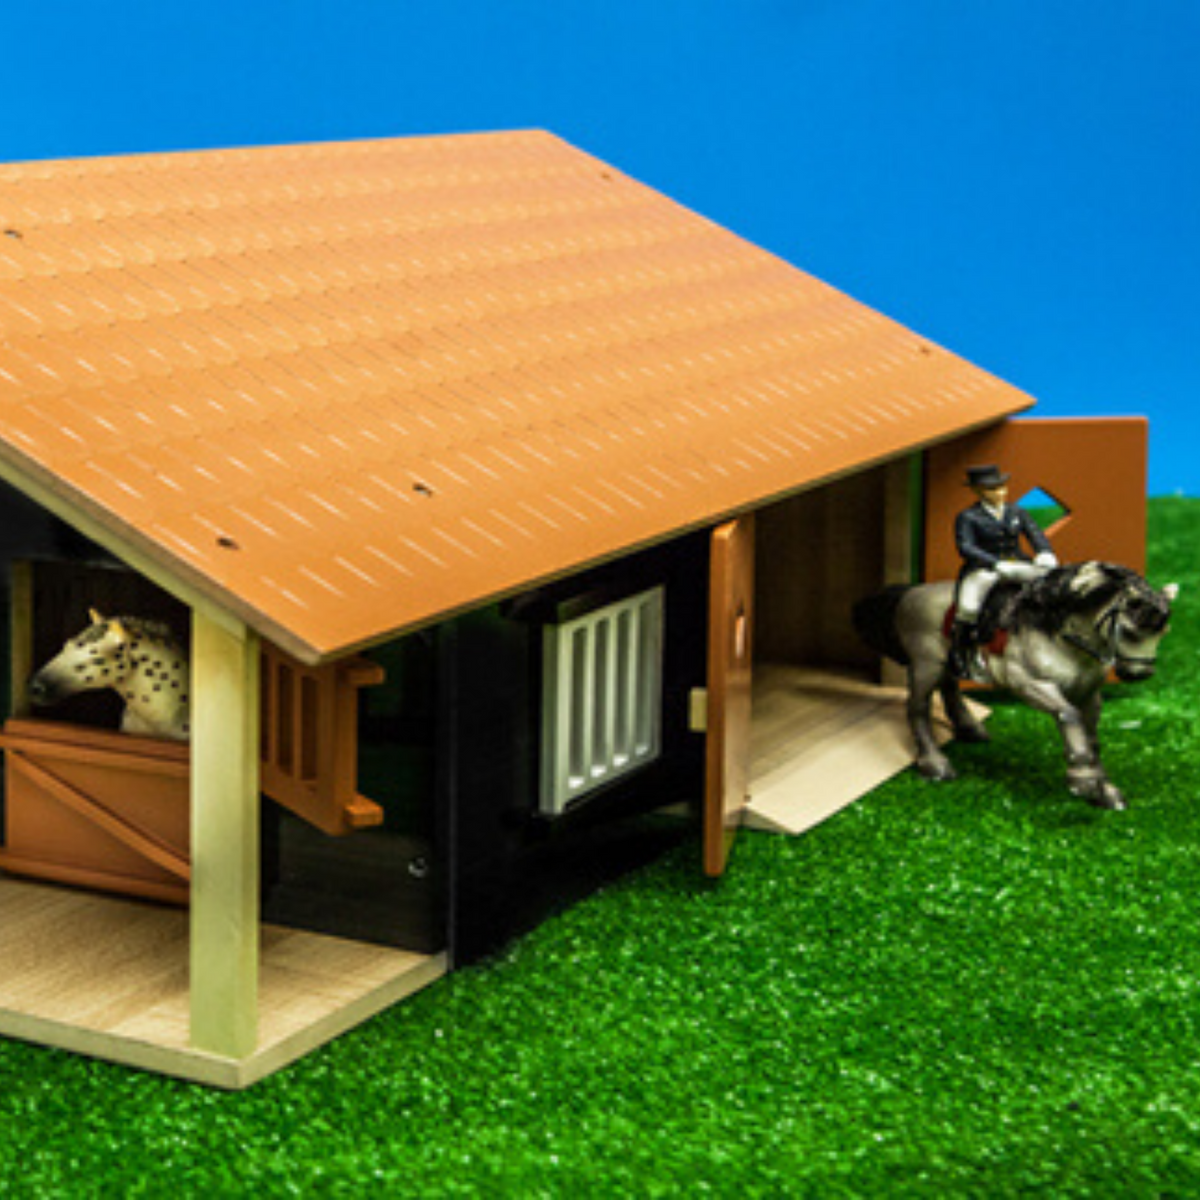 Kids Globe Horse Stable with Boxes & Workshop